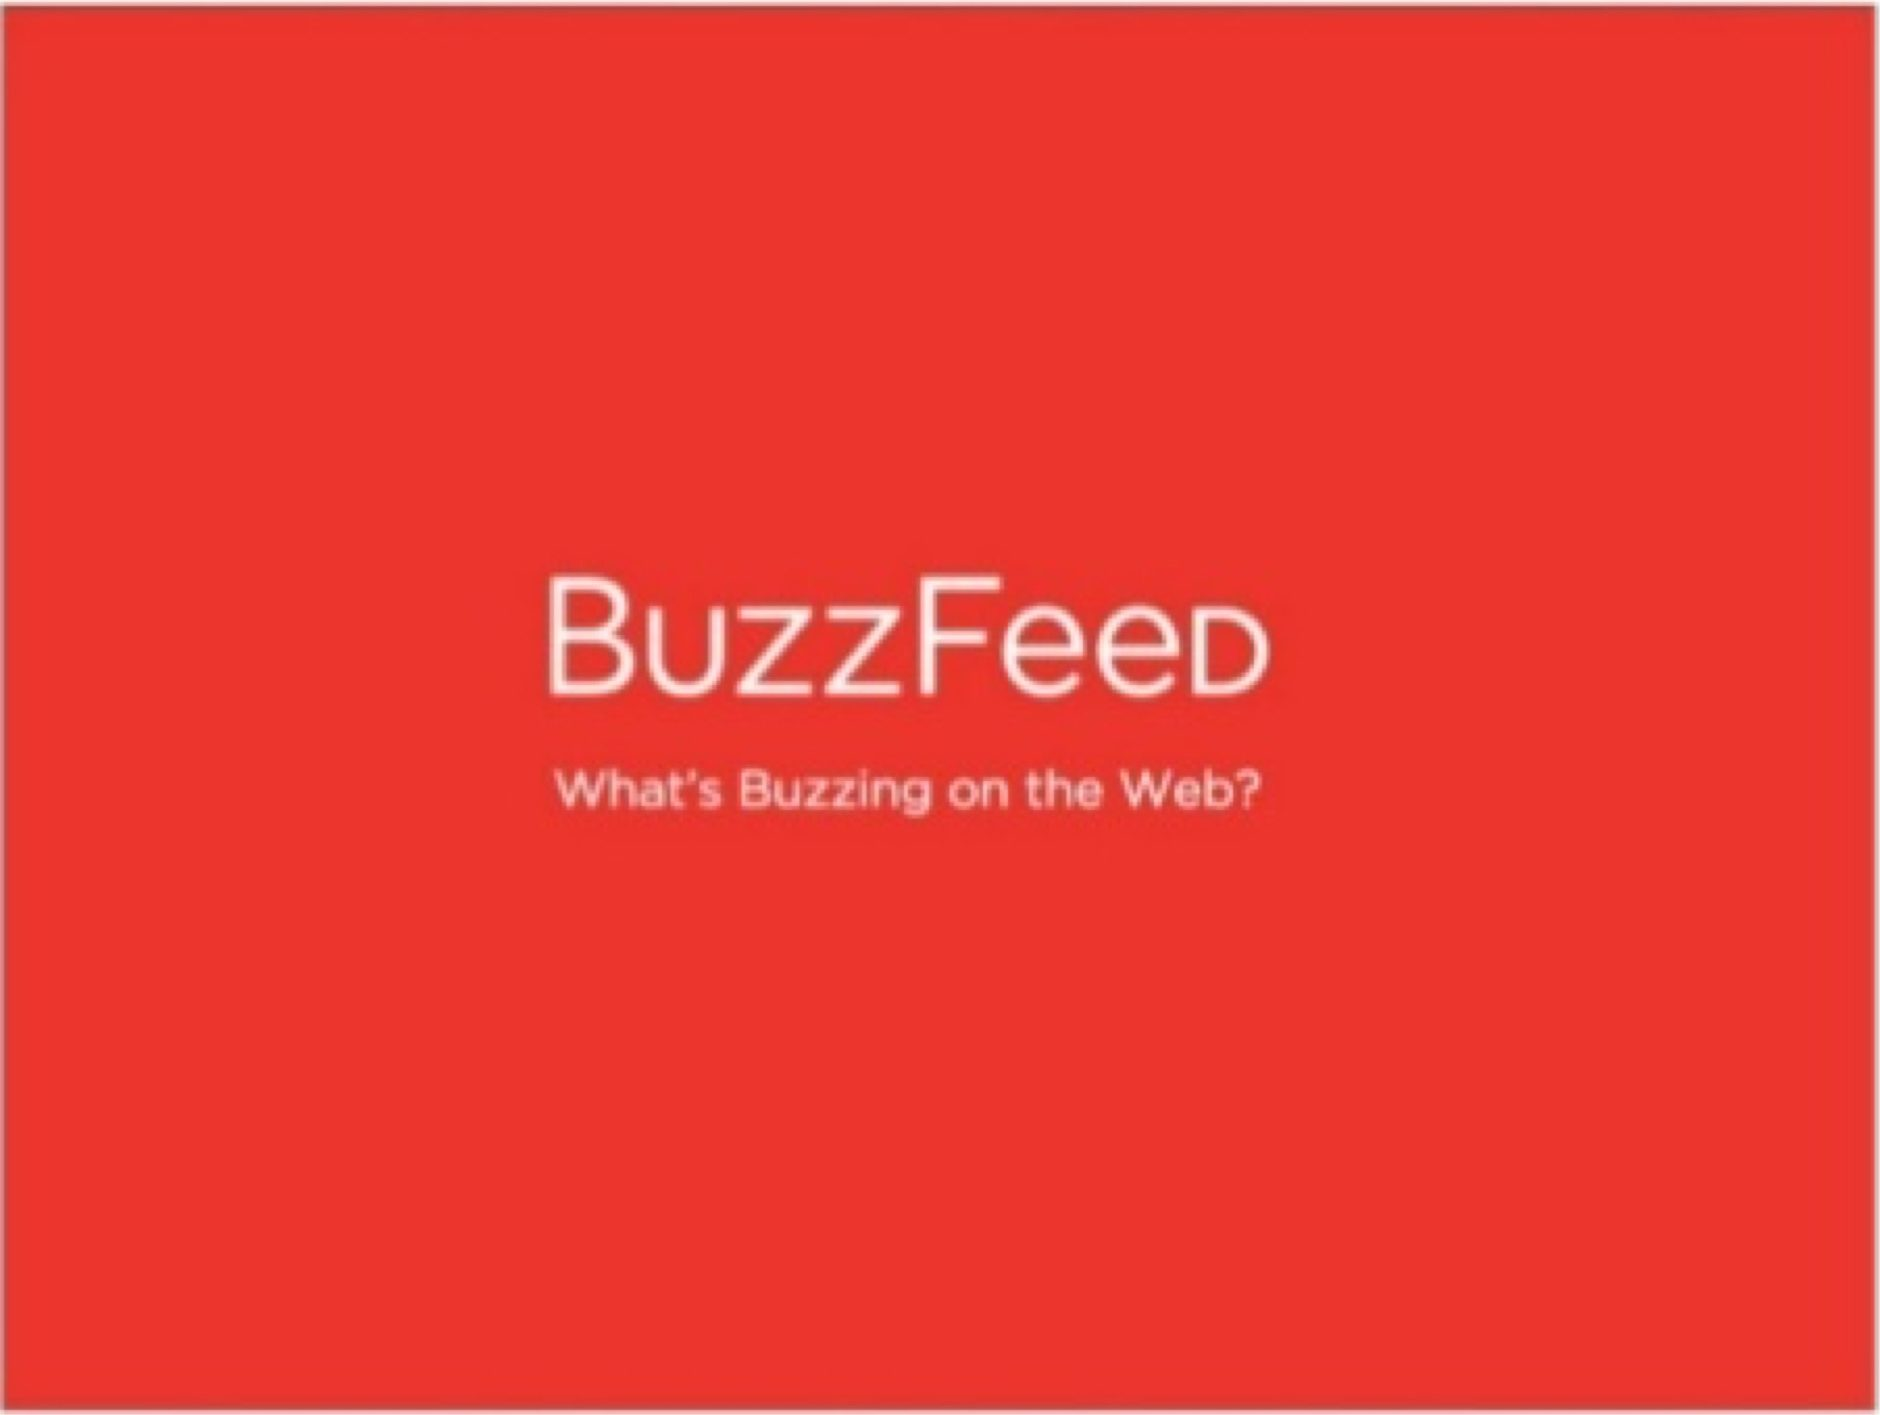 buzzfeed-pitch-deck-001